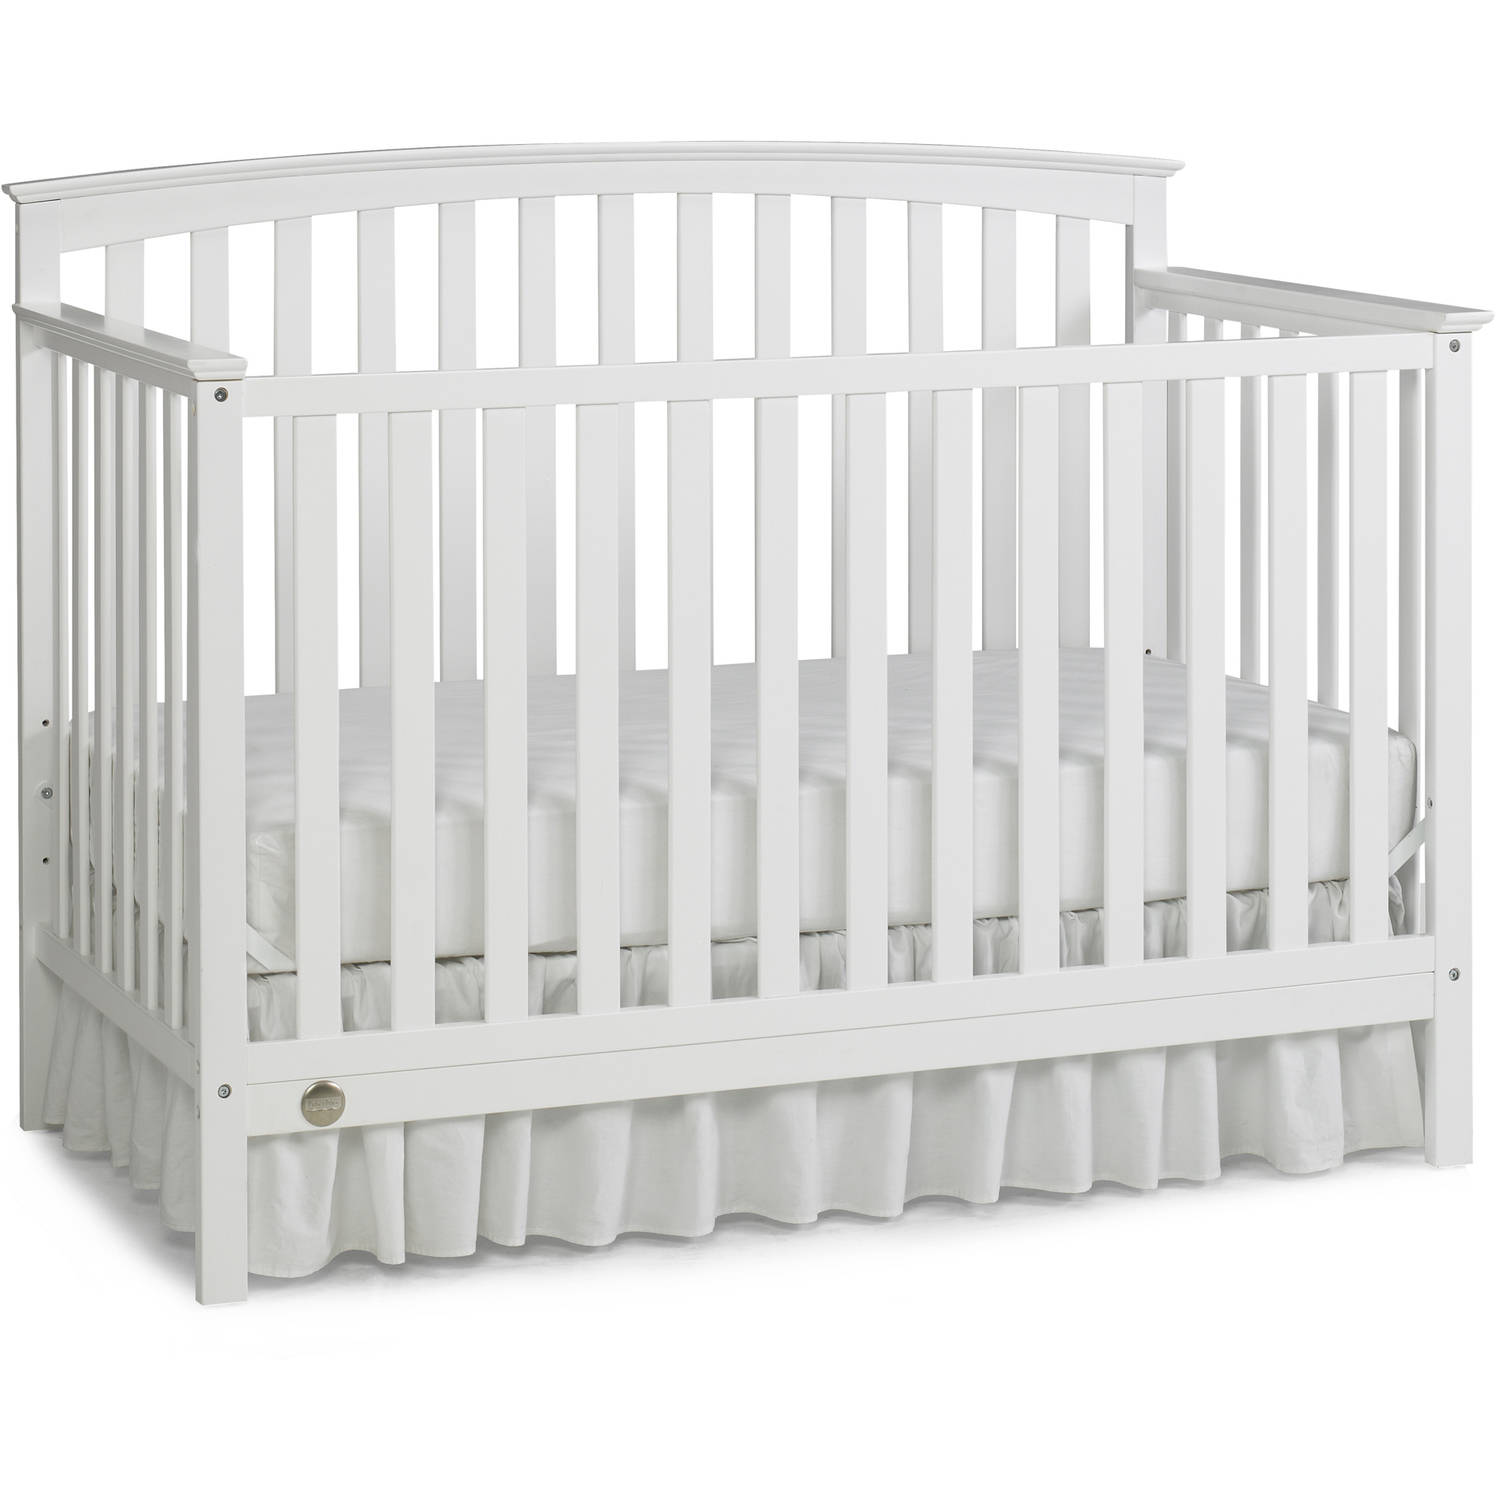 Fisher-Price Jesse 4-in-1 Convertible Crib, Snow White